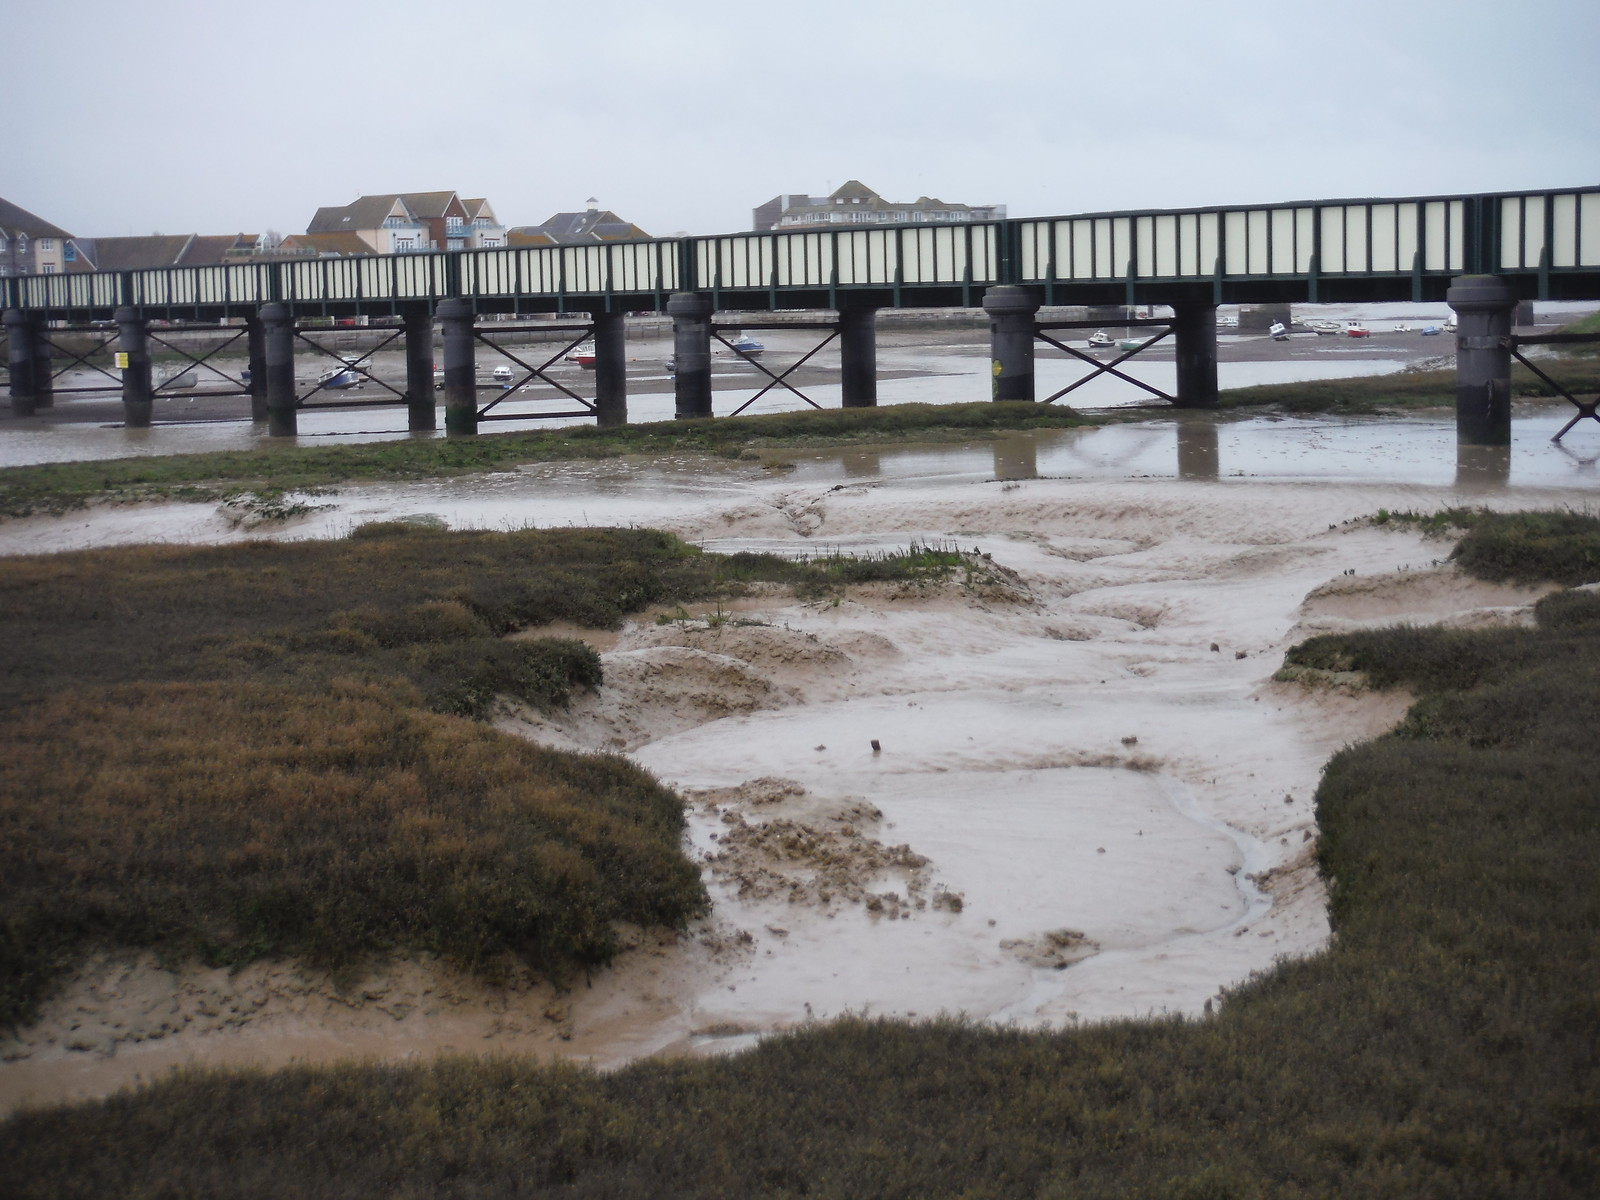 Low Tide by Shoreham Railway Bridge SWC Walk 26 - South Downs Way: Amberley to Shoreham-by-Sea or Lancing